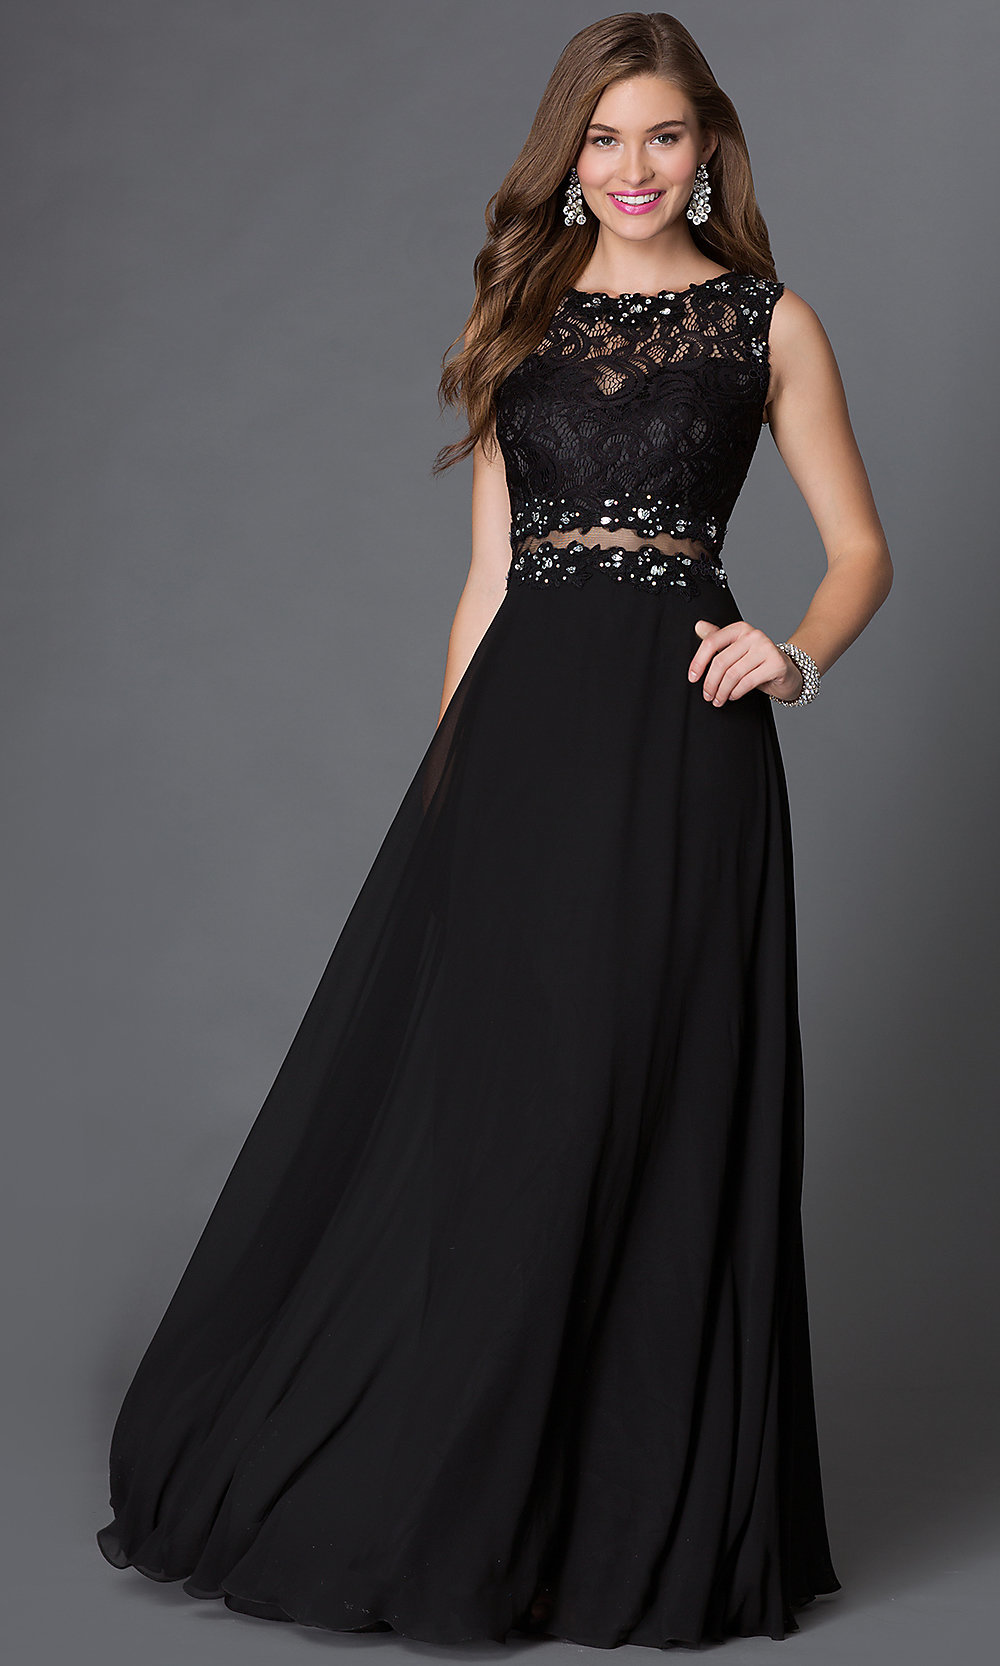 Prom dress places near me 888